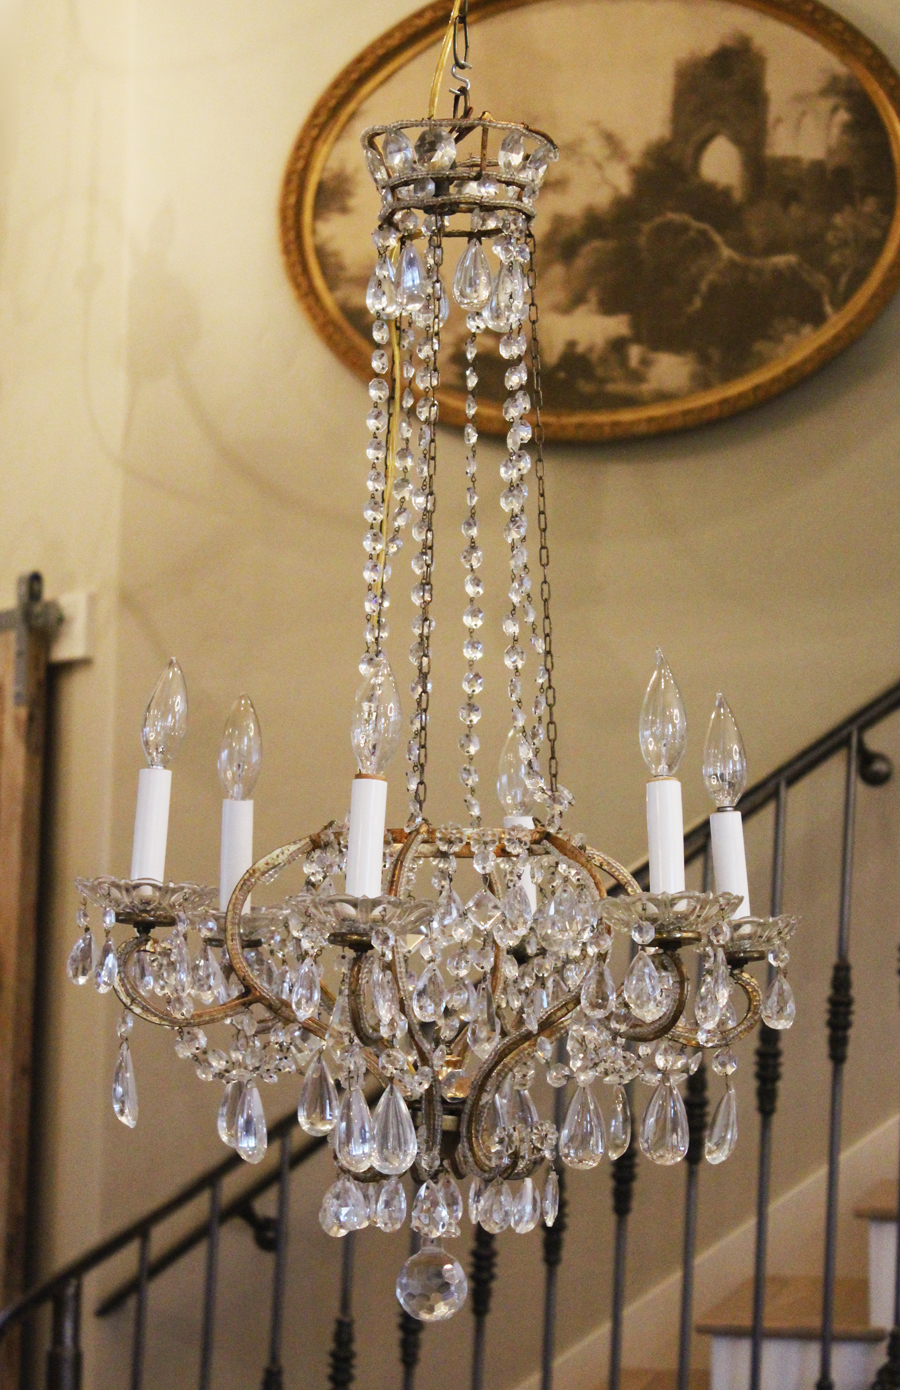 Best Ever! Antique Italian Beaded Crown Xlrg Chandelier